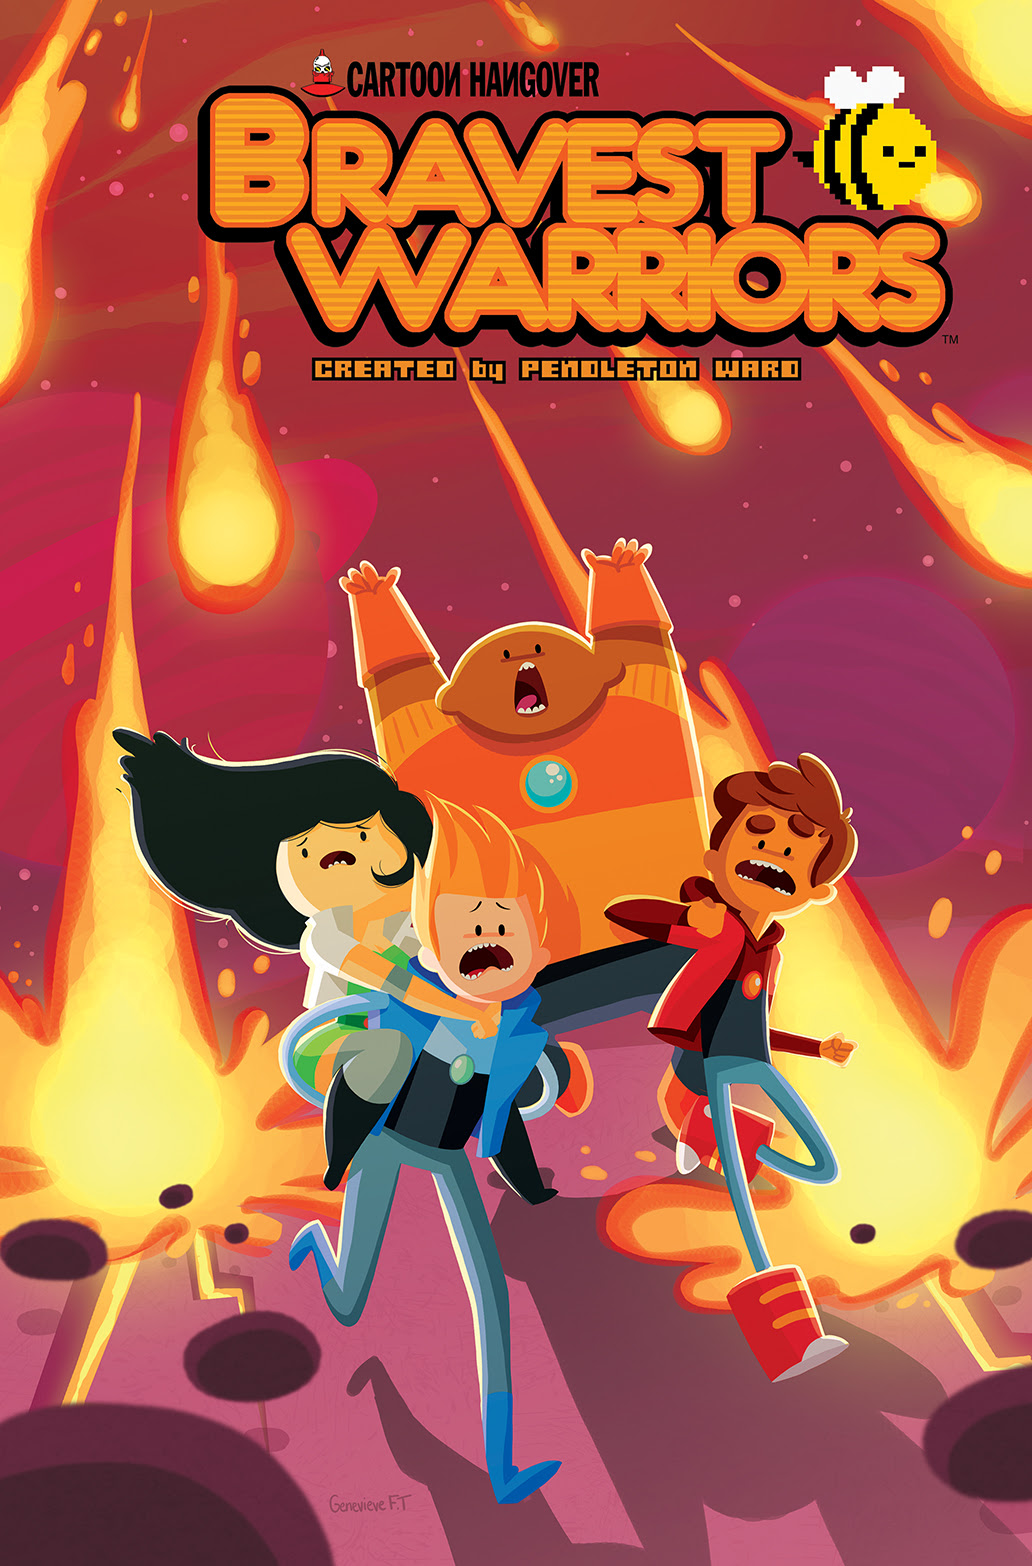 BRAVEST WARRIORS #20 Cover B by Genevieve